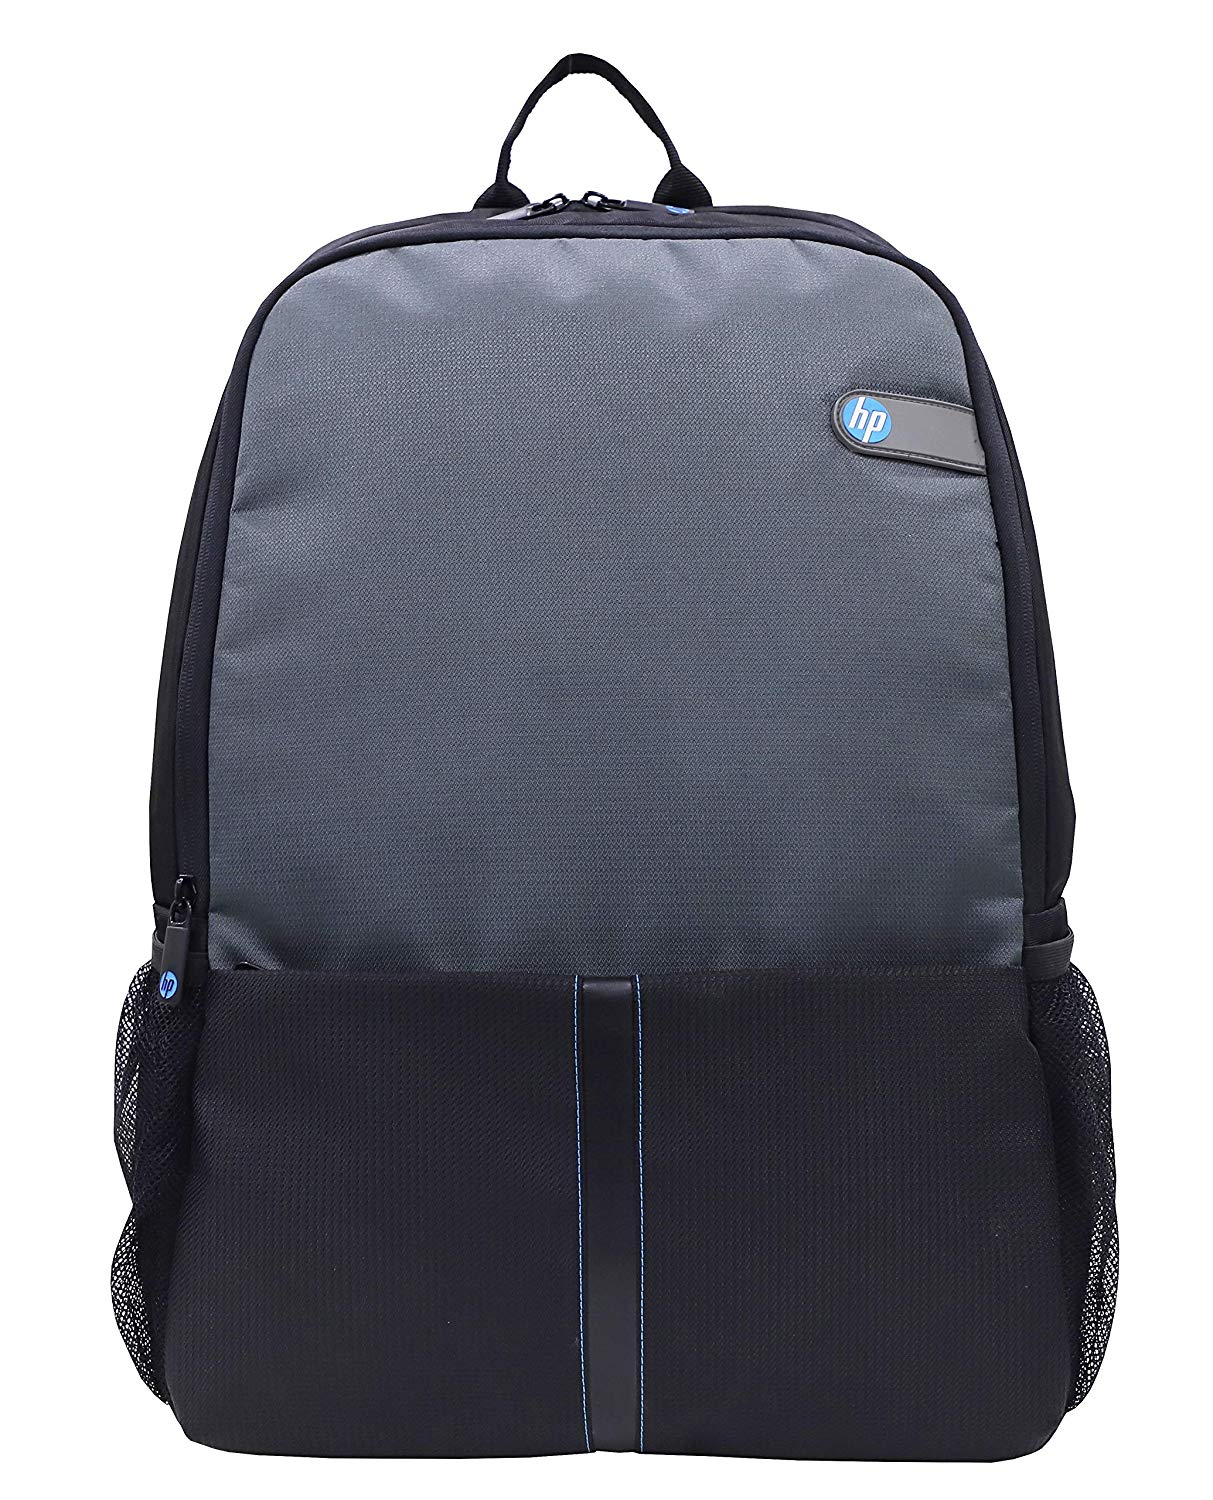 HP Express 27 ltrs 15.6-inch Laptop Backpack